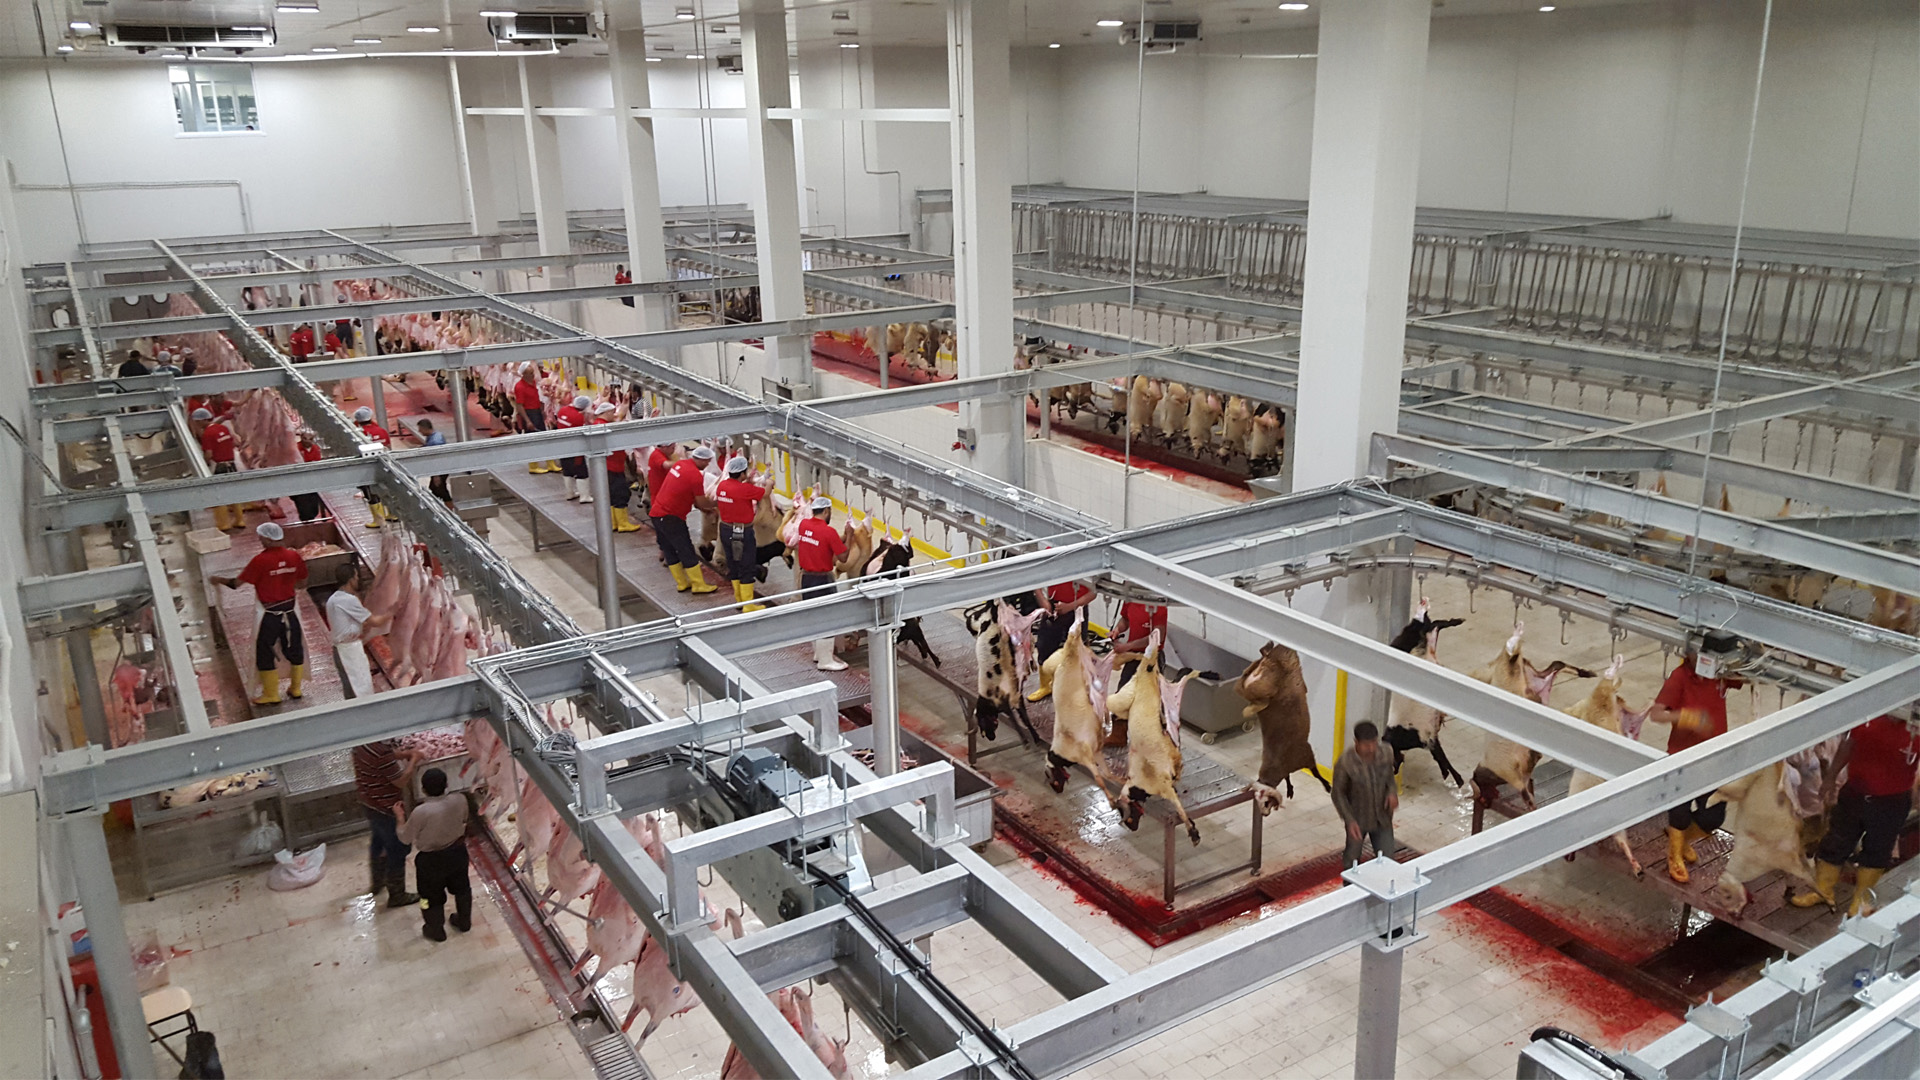 Slaughterhouse and Meat Processing Plants